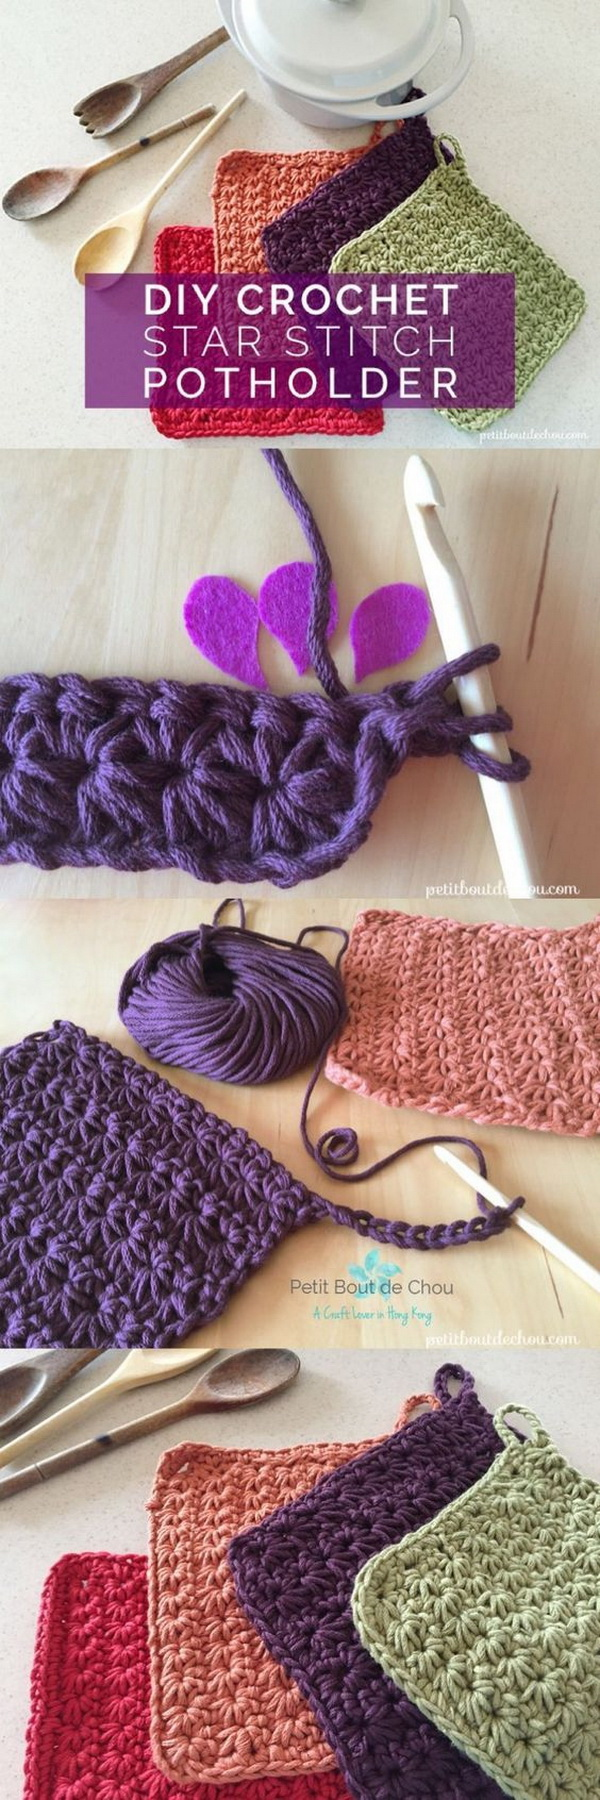 Mother's Day Crafts and gifts: DIY Crochet Star Stitch Potholder.